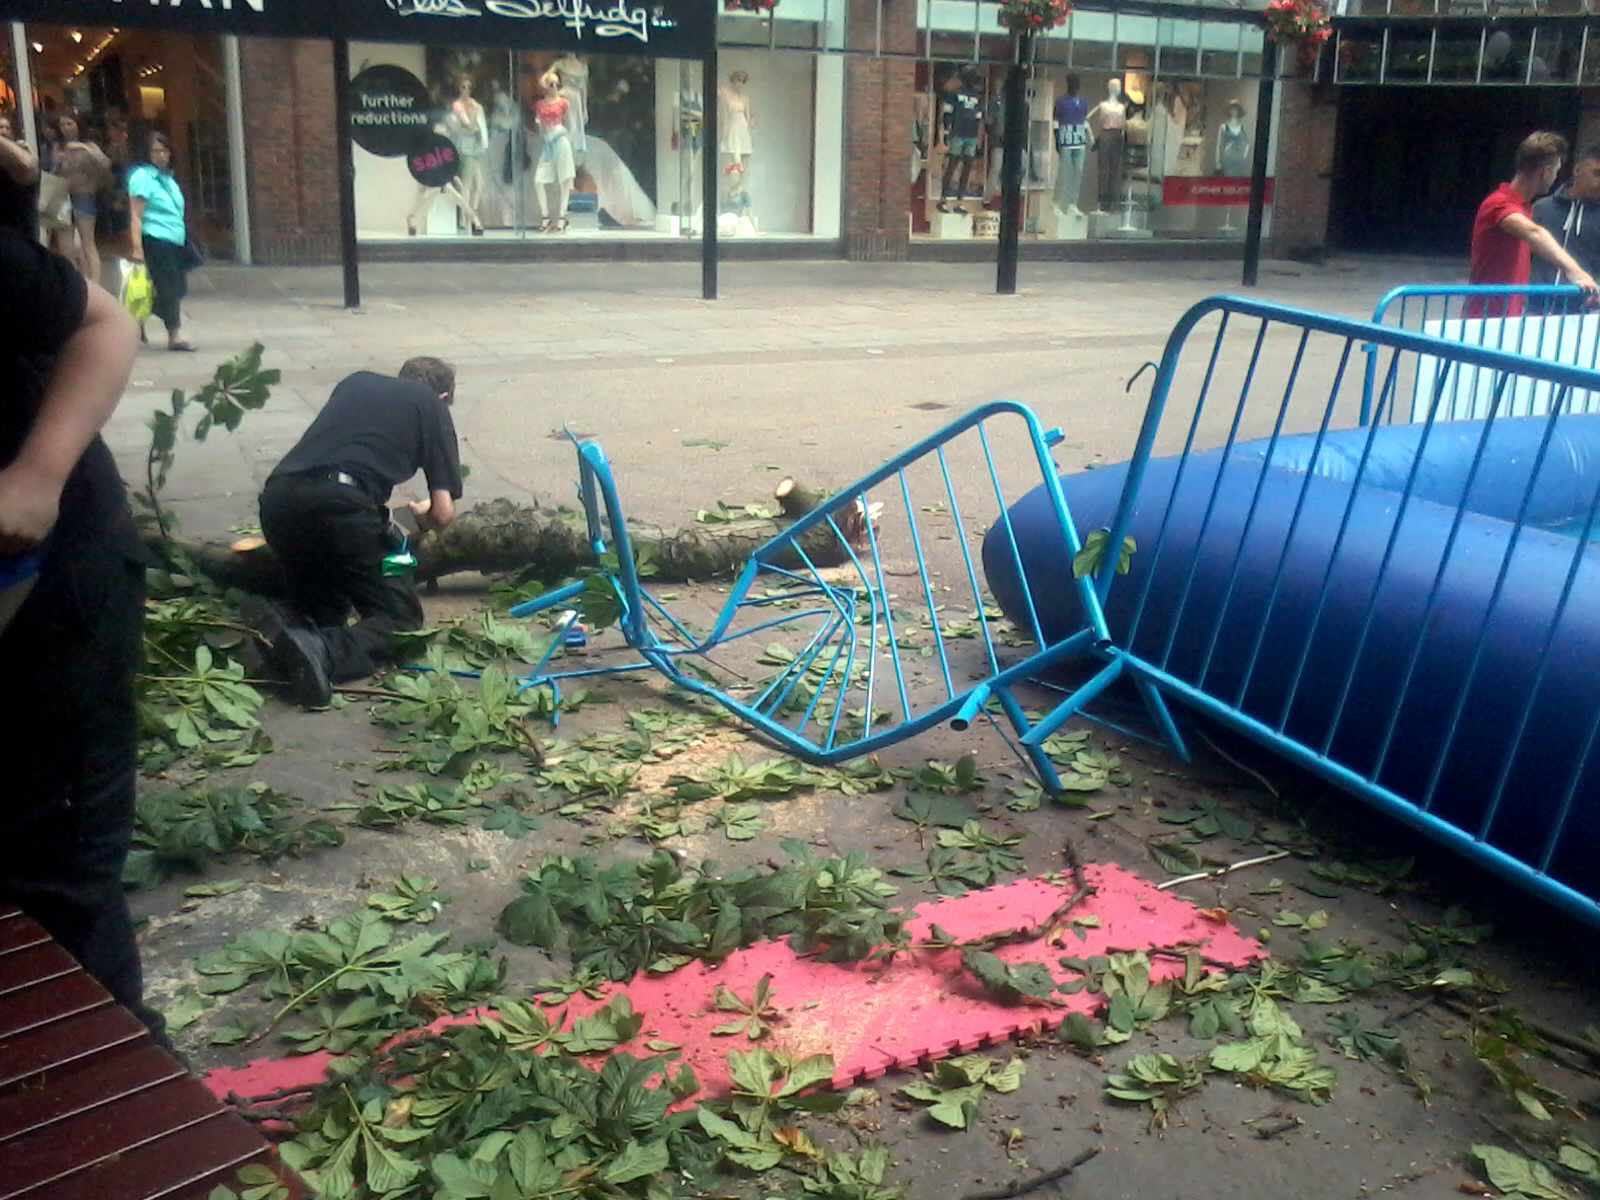 Miraculous escape for two small children as huge branch falls from tree in York city centre